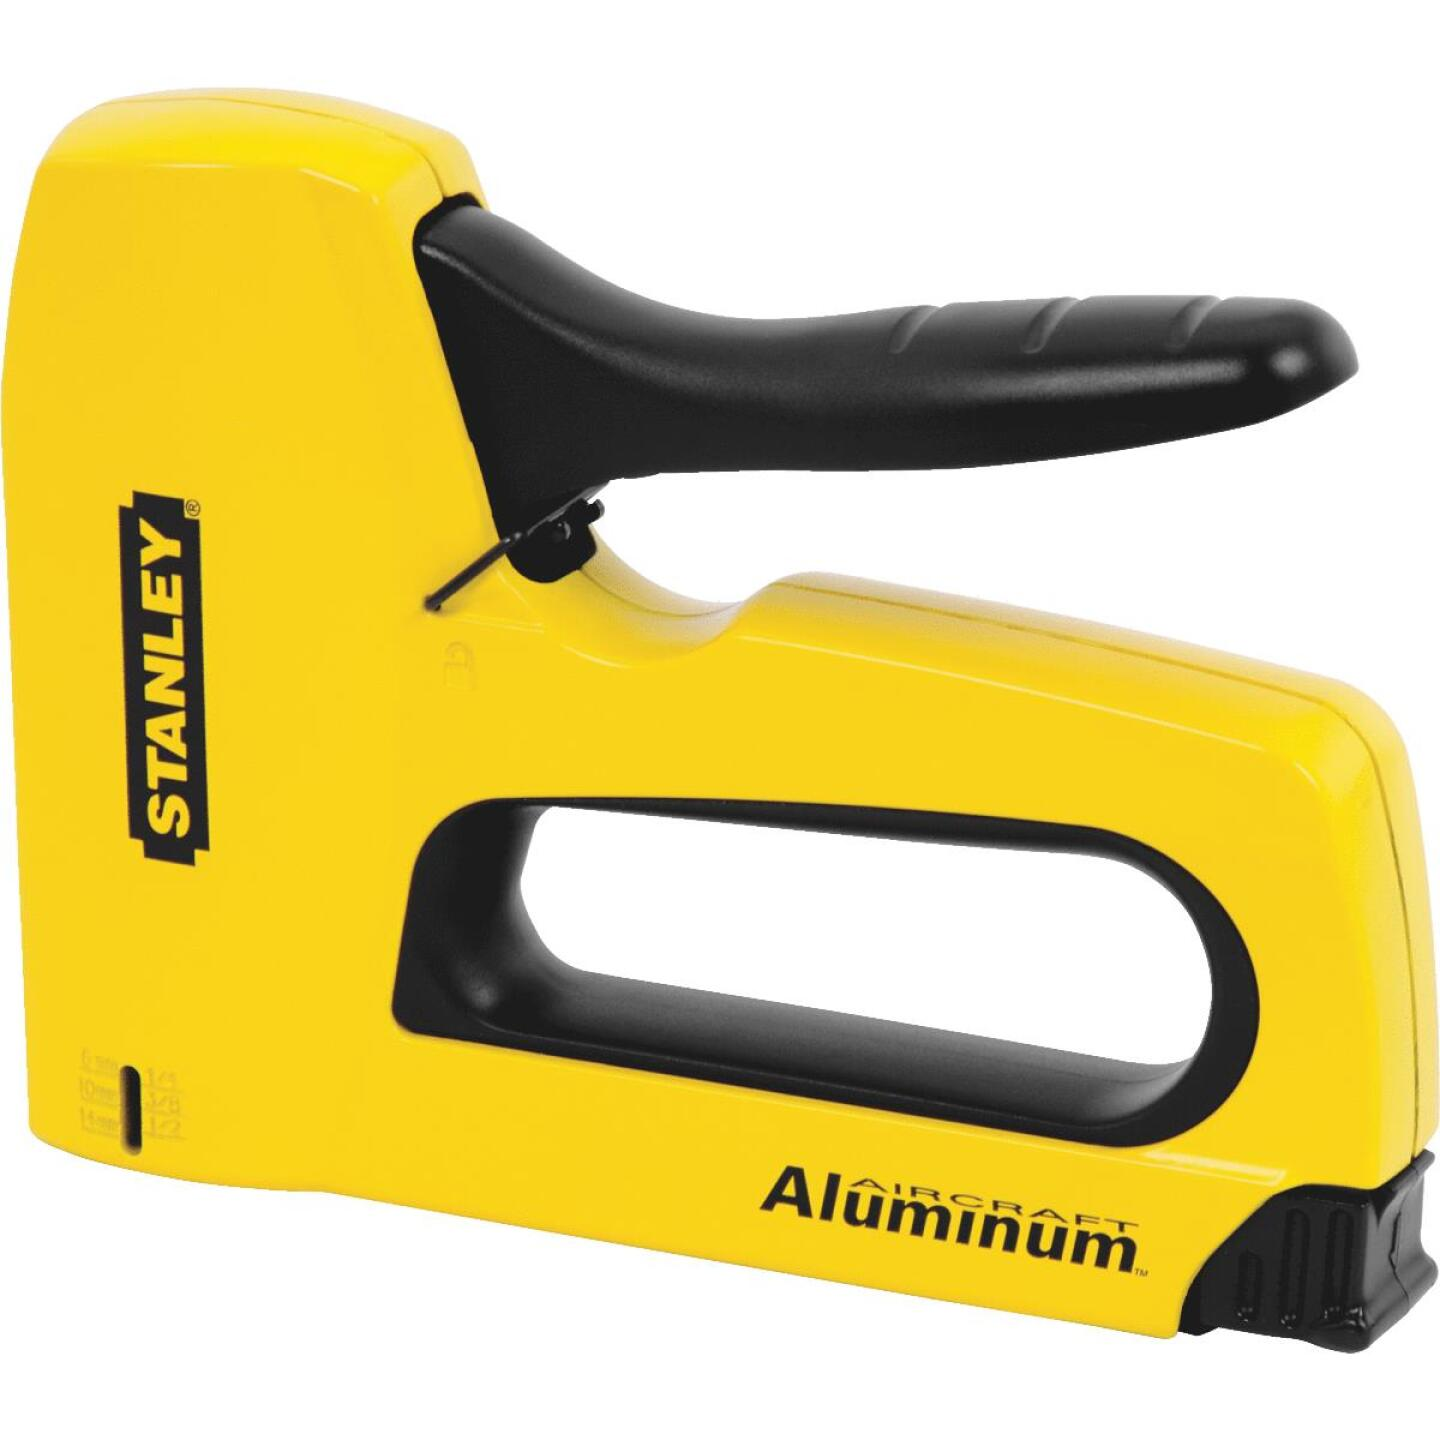 Stanley SharpShooter High-Visibility Heavy-Duty Staple Gun Image 1